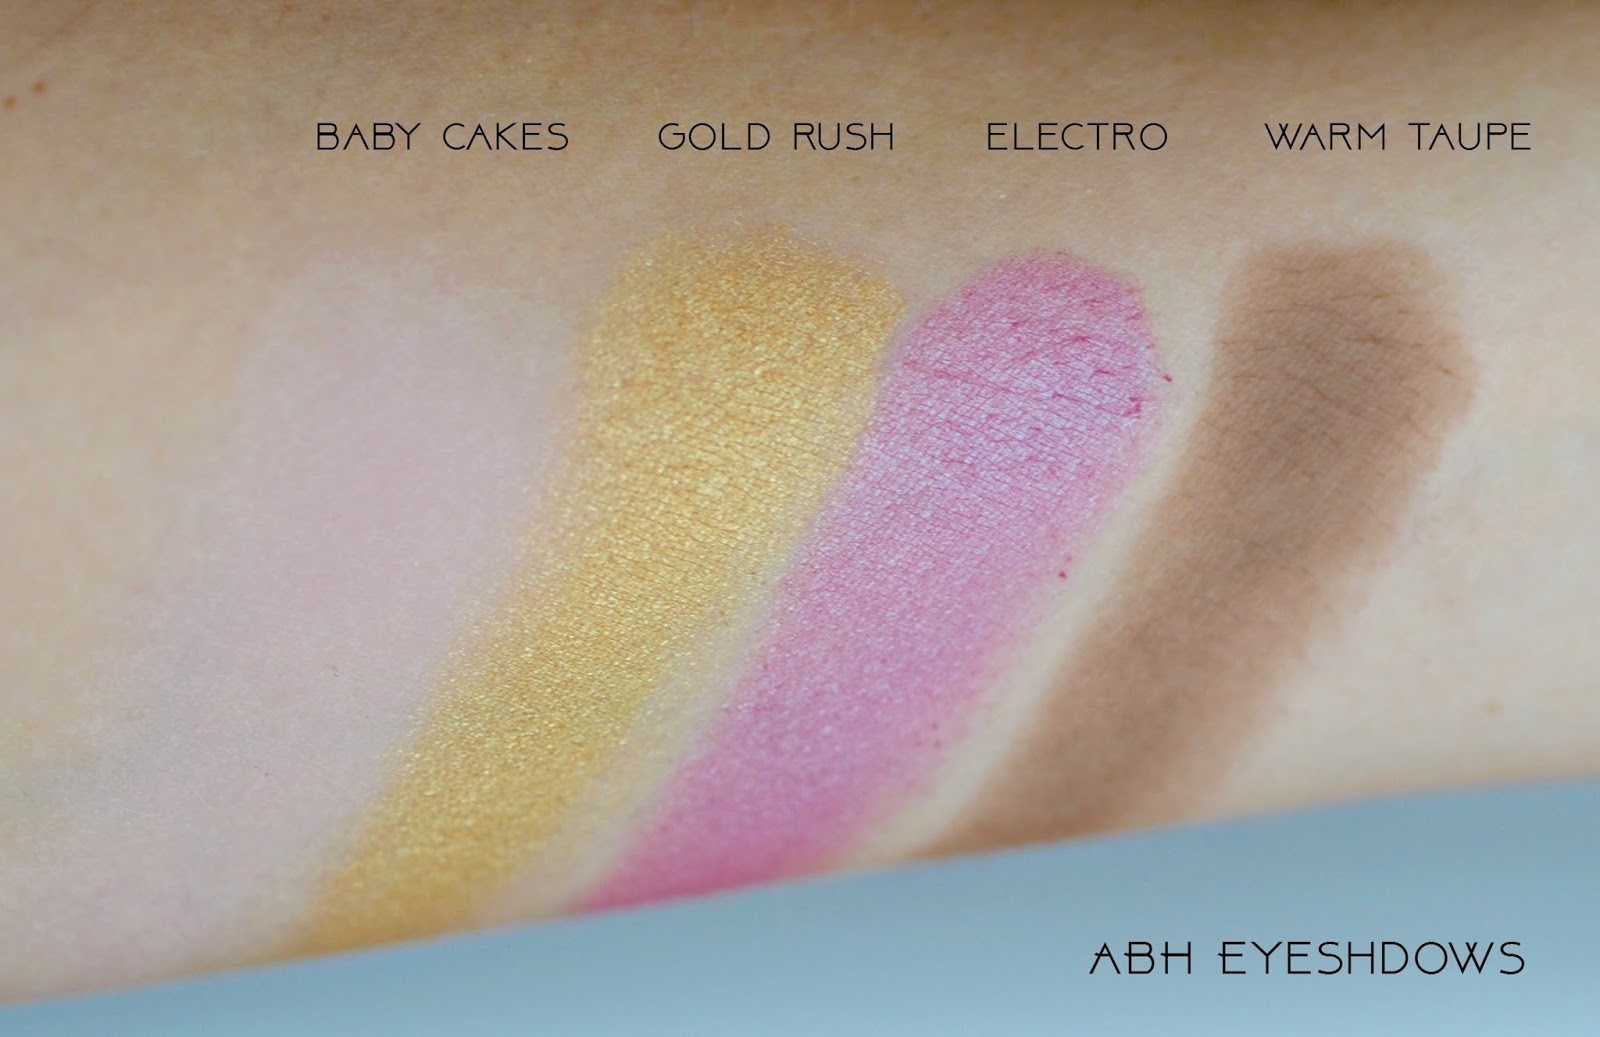 Anastasia Beverly Hills eyeshdows, baby cakes, electro, warm taupe, gold rush, swatches, ABH